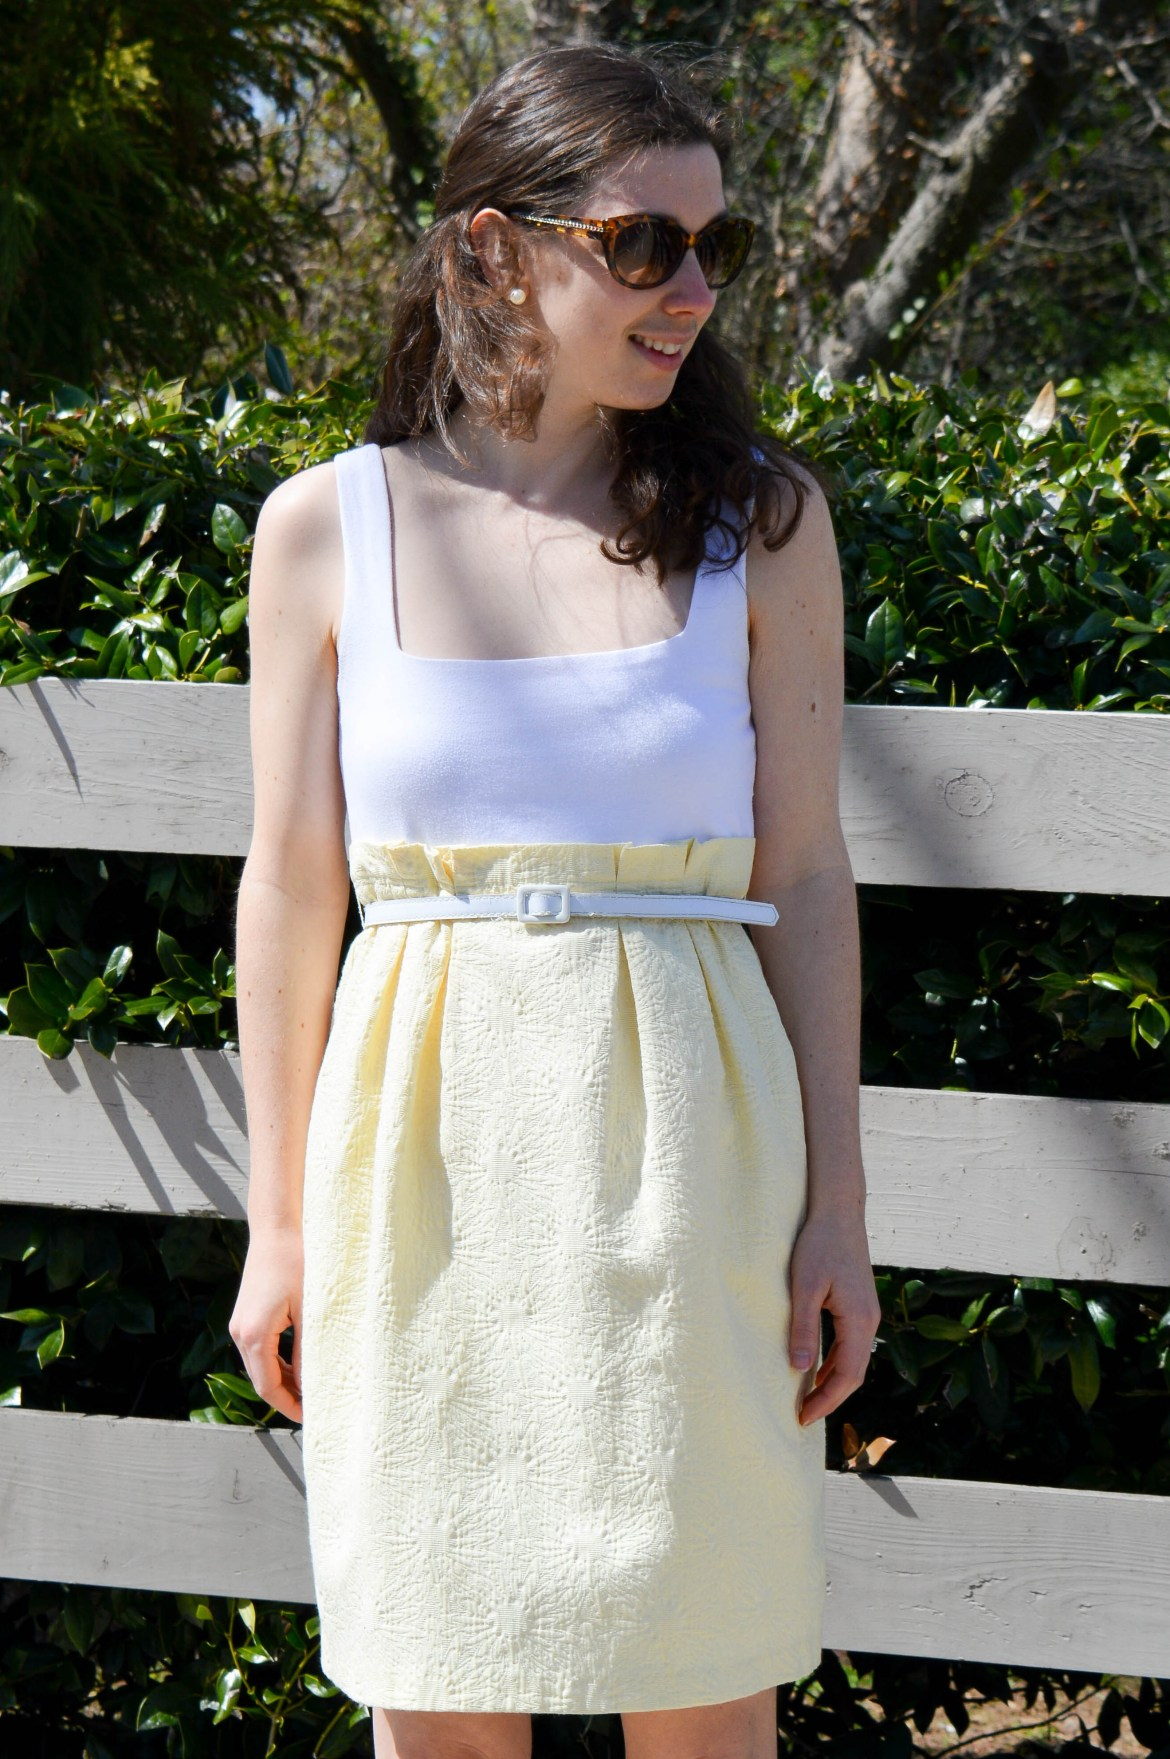 Yellow and white dress (that looks like a top and skirt)